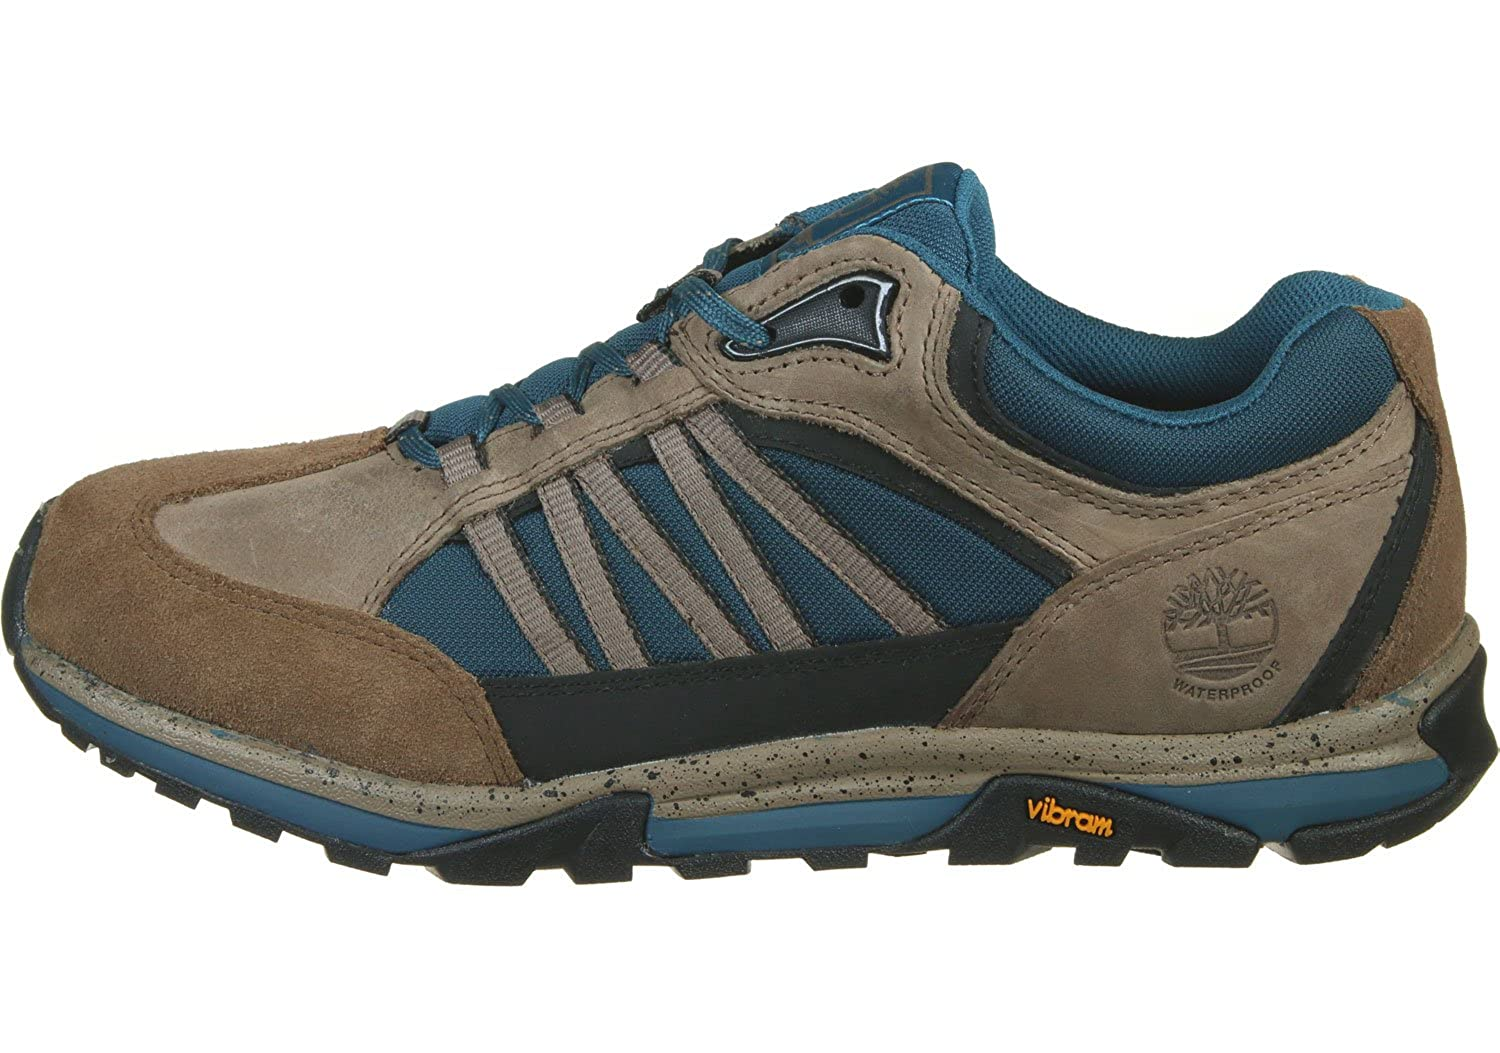 Timberland Edgewater Low WP Approach Shoes Brown braun blau Size:43:  Amazon.co.uk: Sports & Outdoors